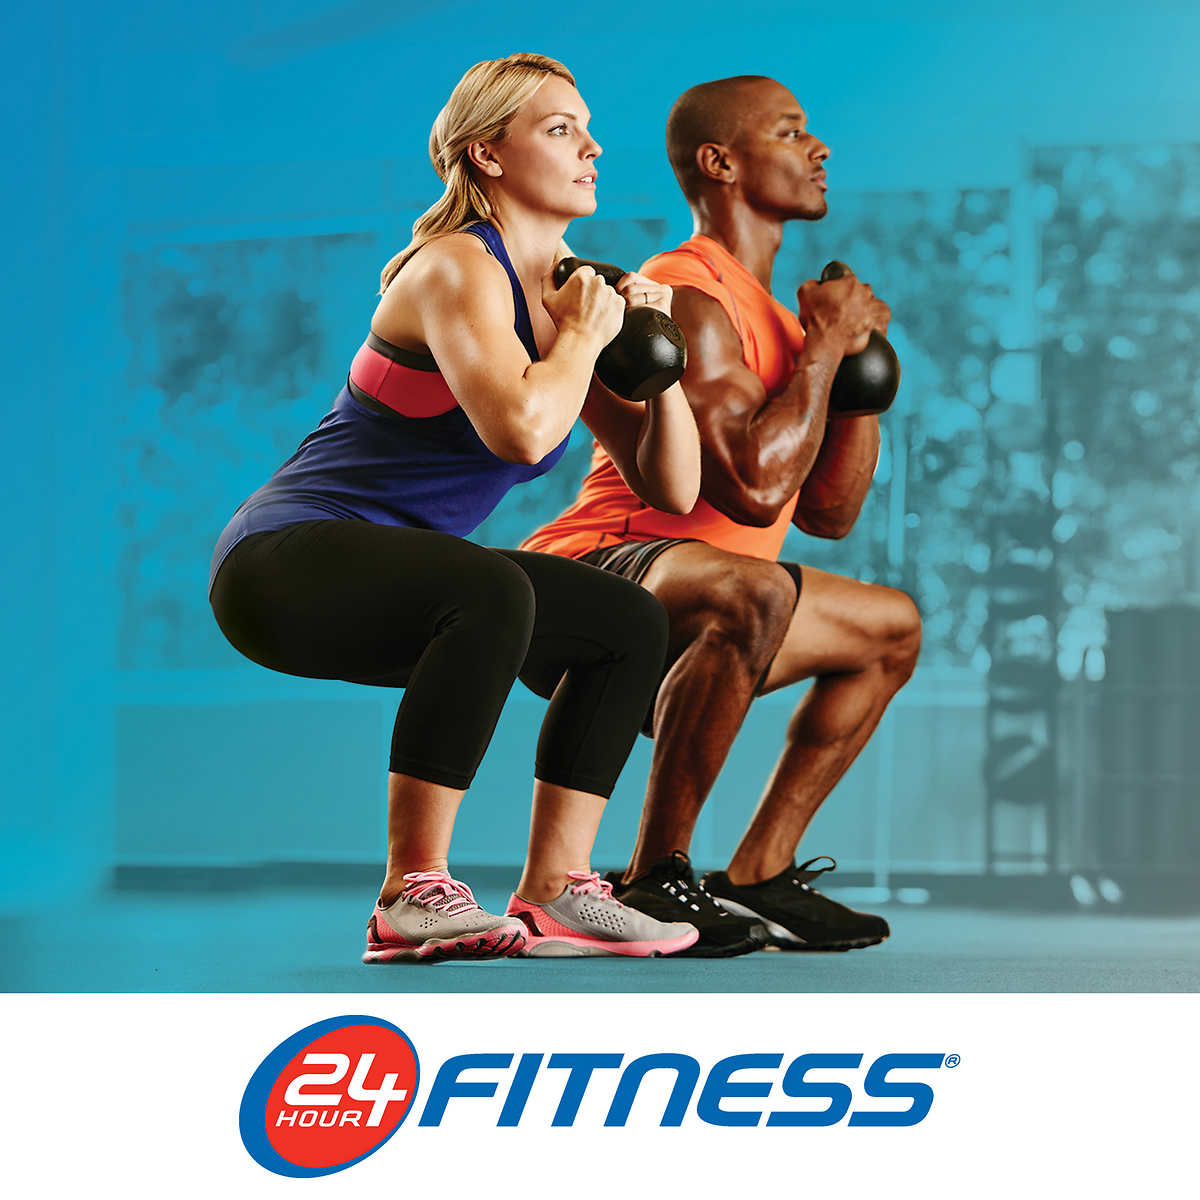 a07ec32aad 24 Hour Fitness 2-year ALL-CLUB SPORT Membership eCertificate